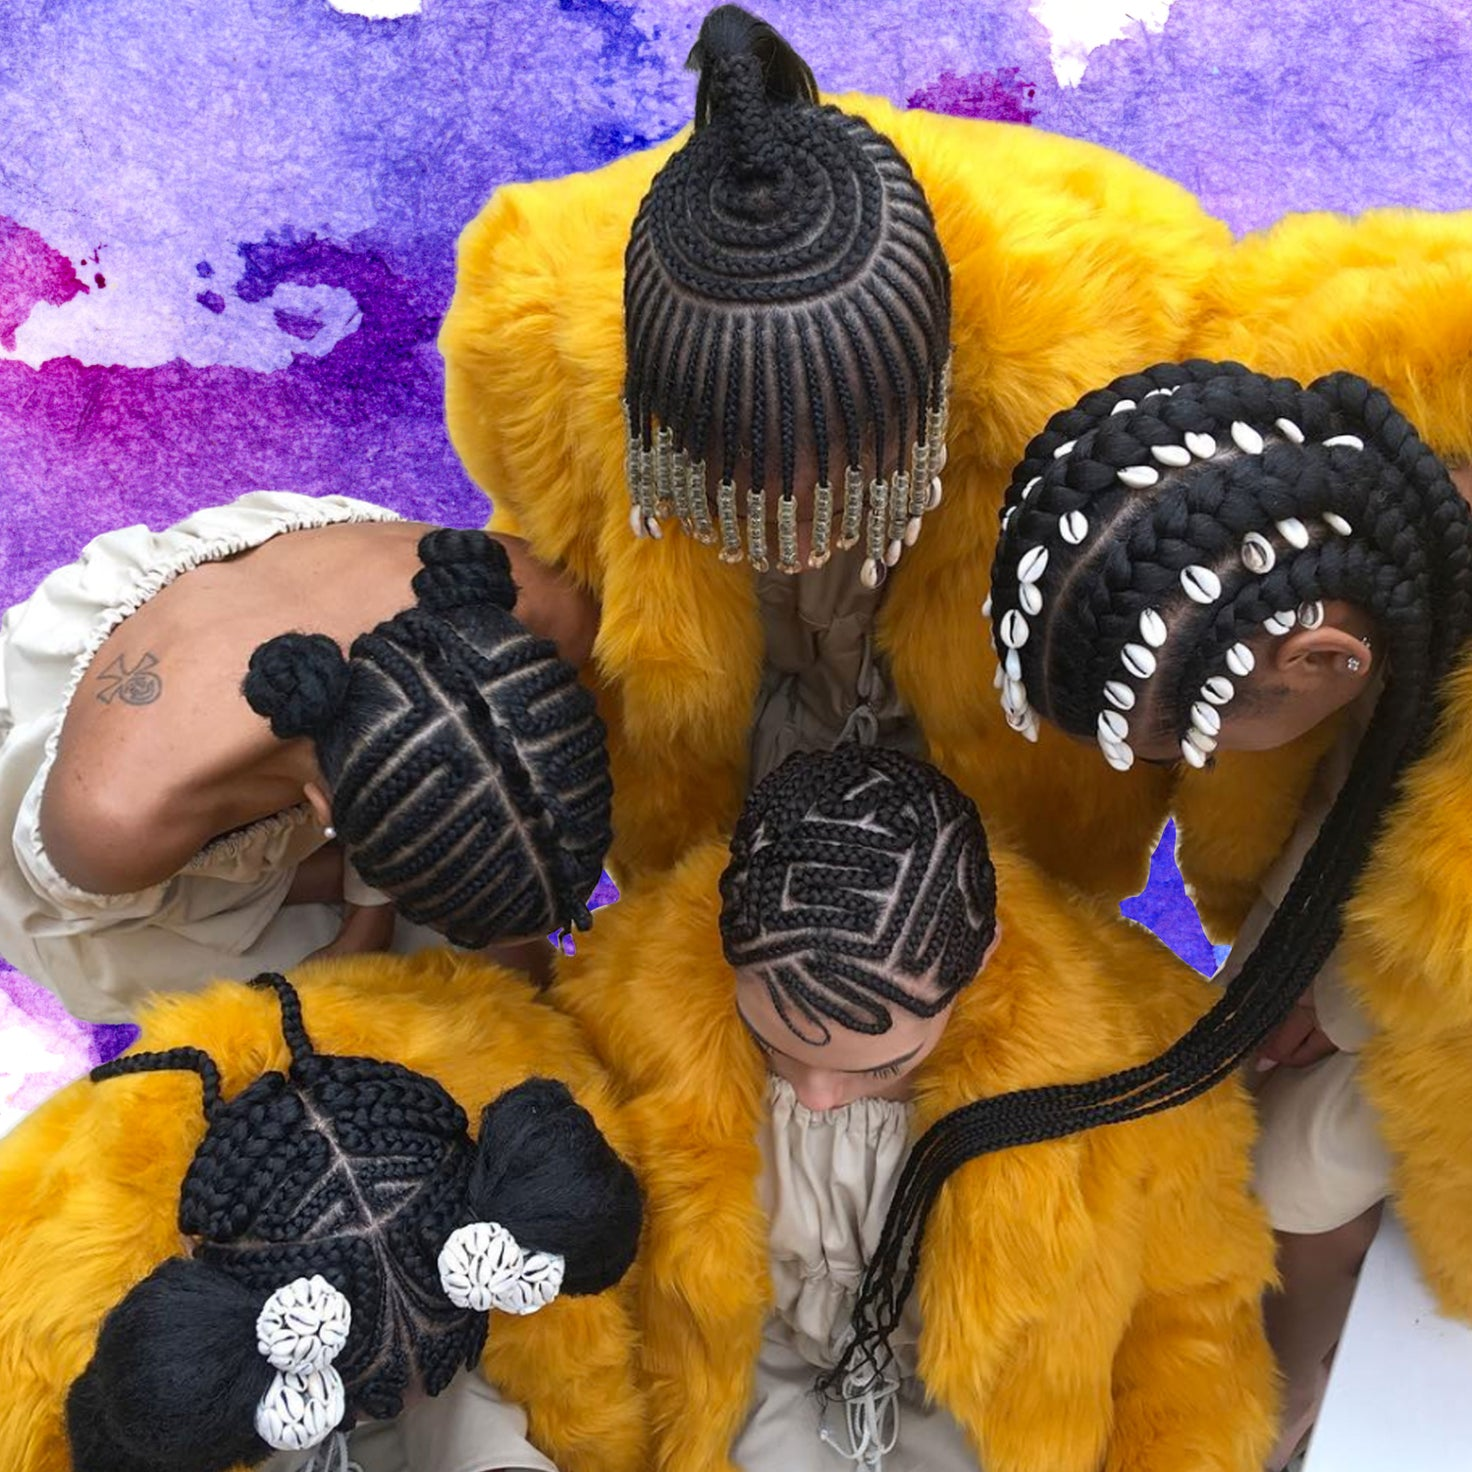 ICYMI: Shani Crowe and Saint Heron Put On An Epic Hair Art Show